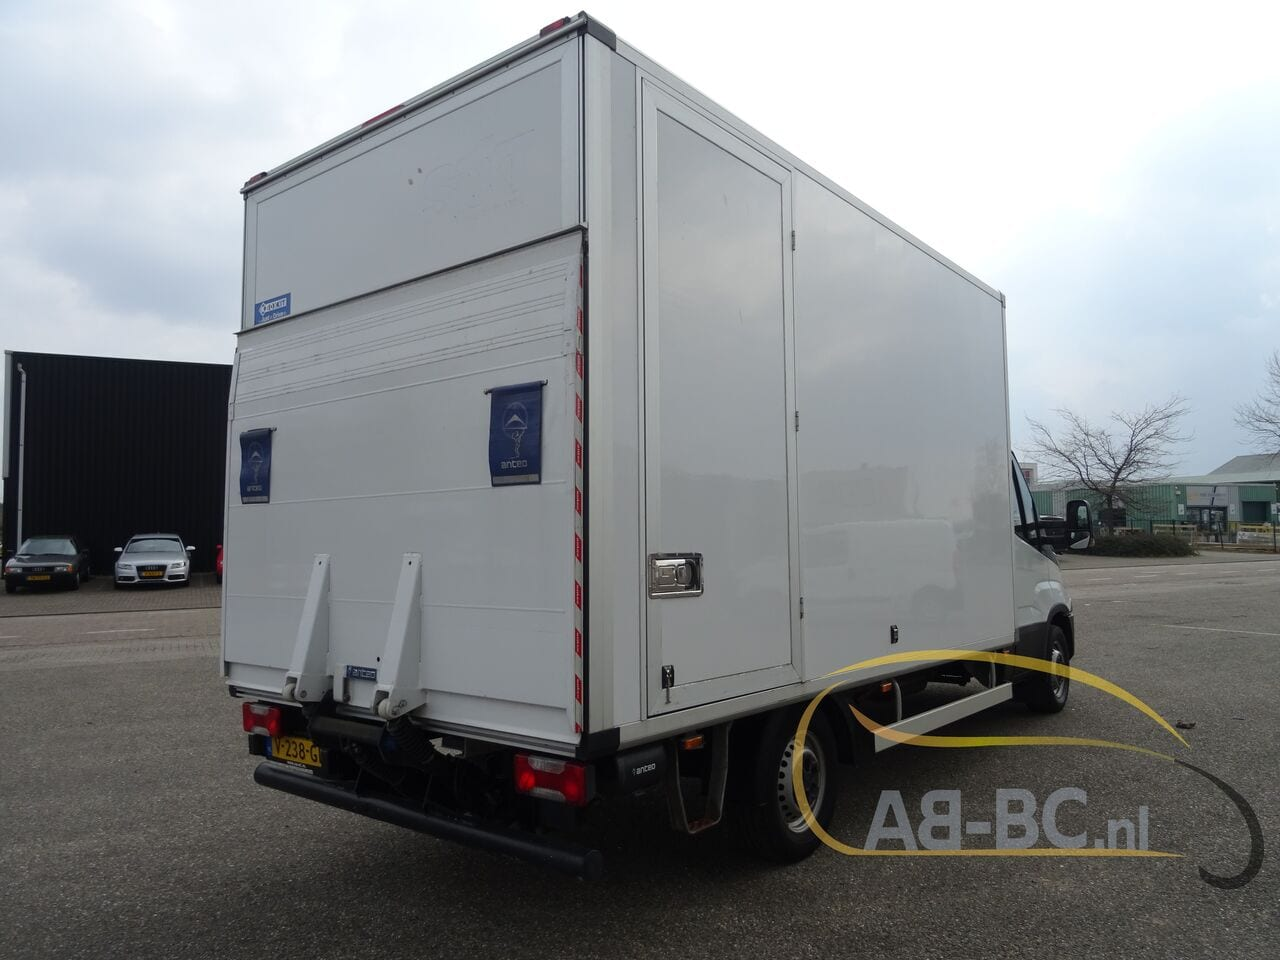 commercial-vehicle-box-truck-3-5tIVECO-Daily-35S14-EURO-6---1618841998407474273_big_c6c2508ce50273b362df2bc8ad8edf21--20081111411660340700